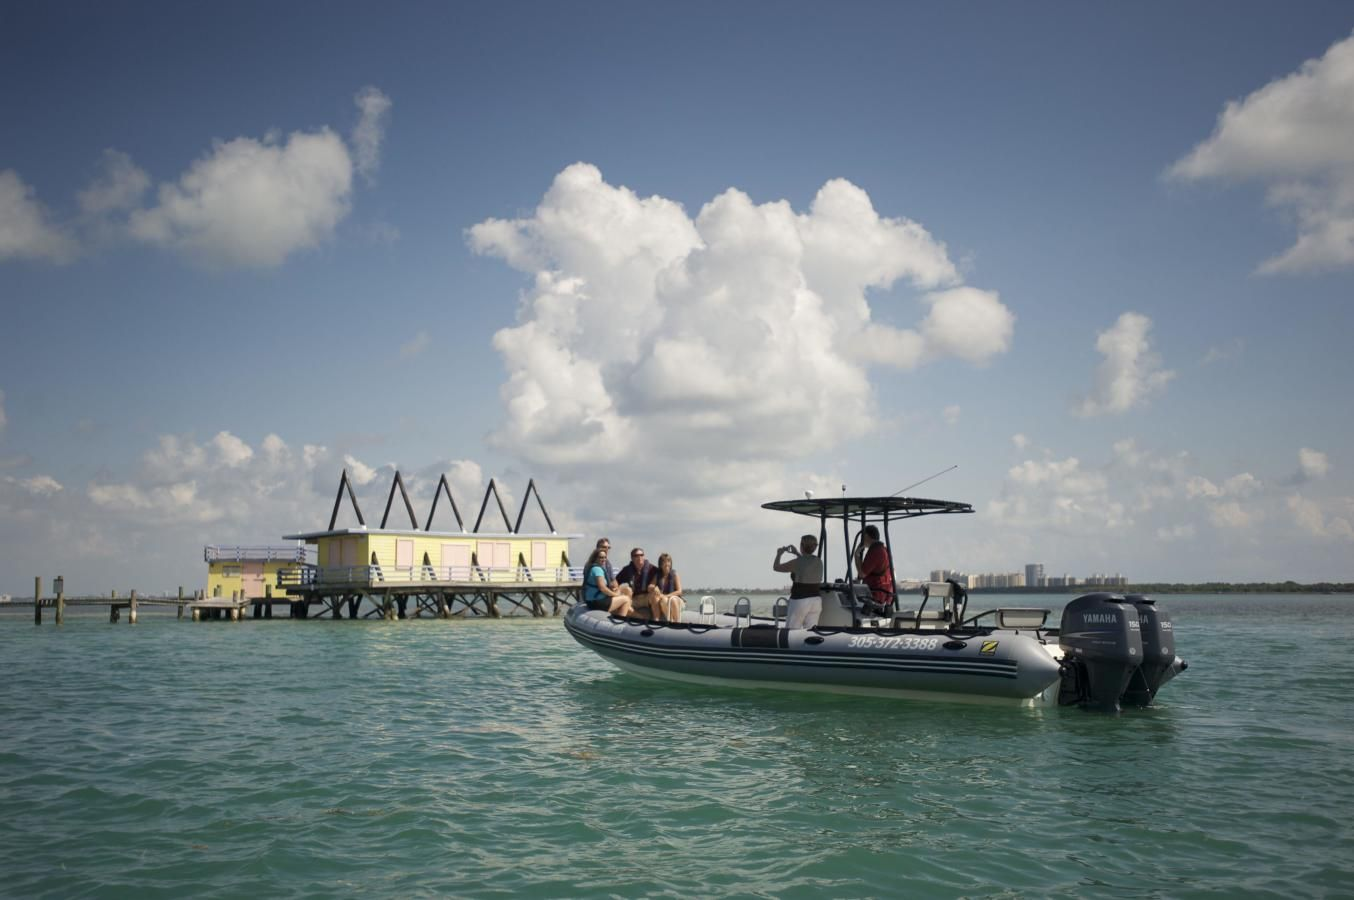 Visiting historic Stiltsville in Biscayne National Park